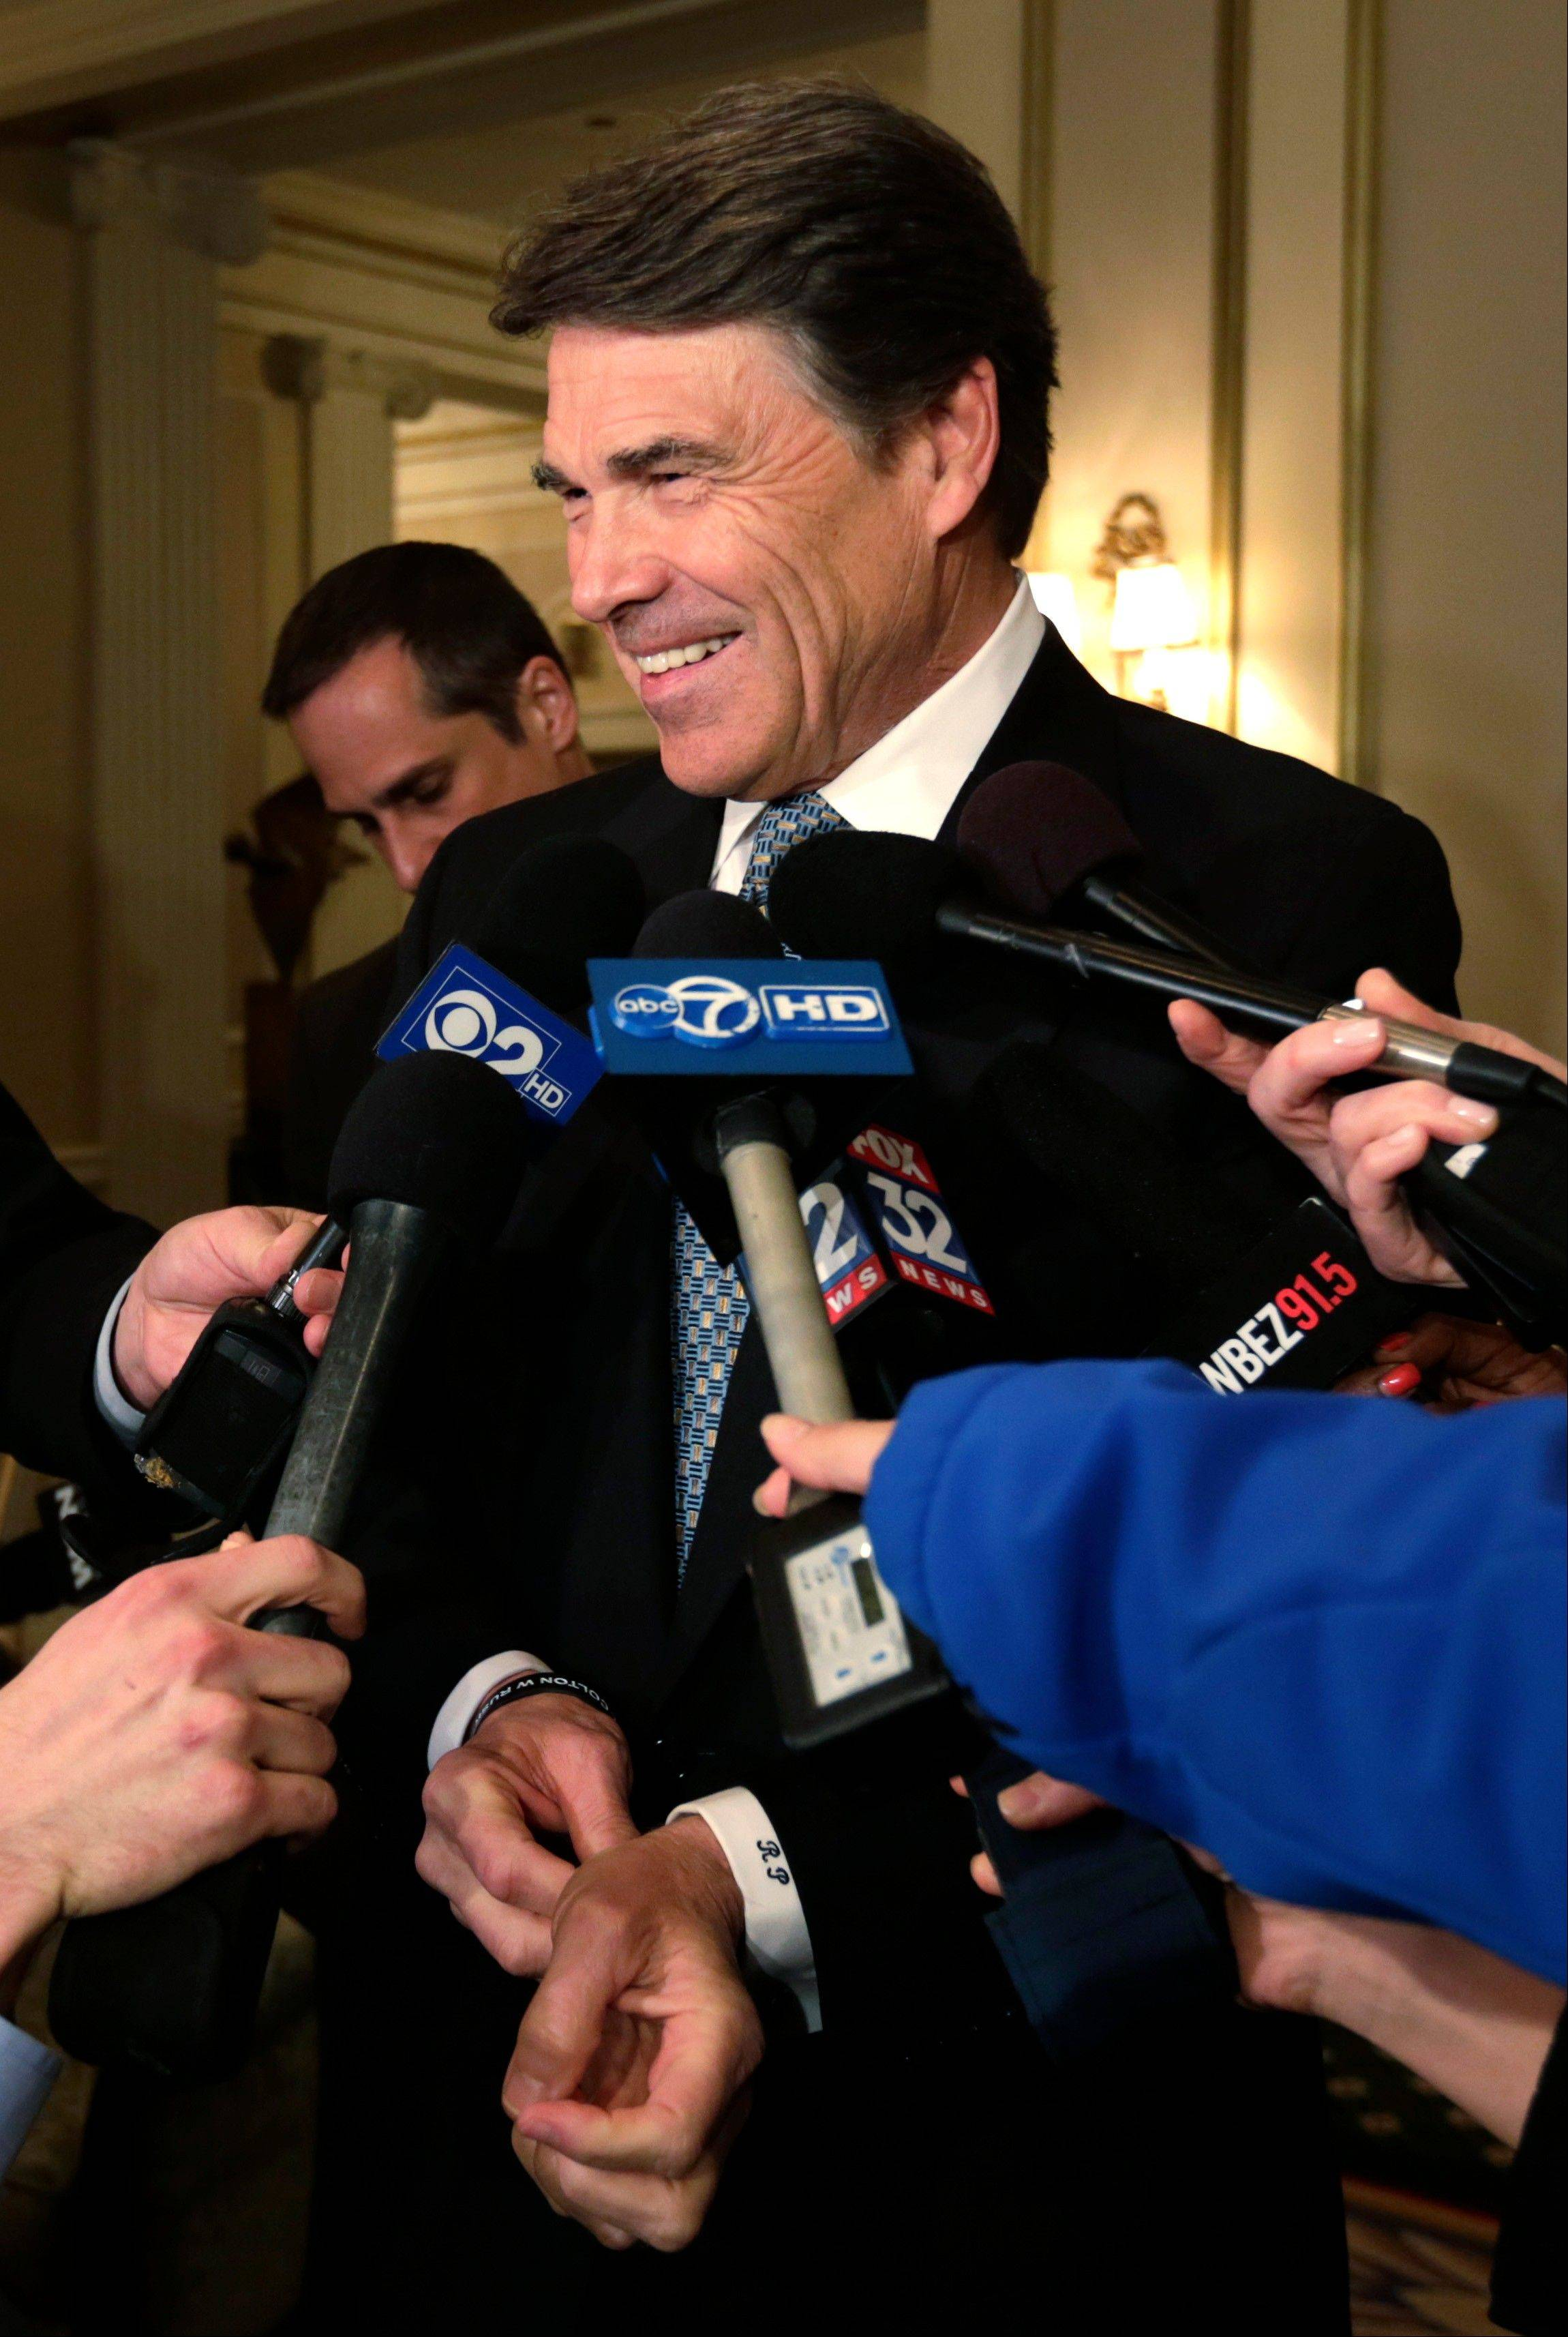 Texas Gov. Rick Perry meets with members media on Monday in Chicago as he visits Illinois to spark competition by luring businesses away from the state. In promoting his state�s business environment, Perry says Texas is cheaper and has less regulation.